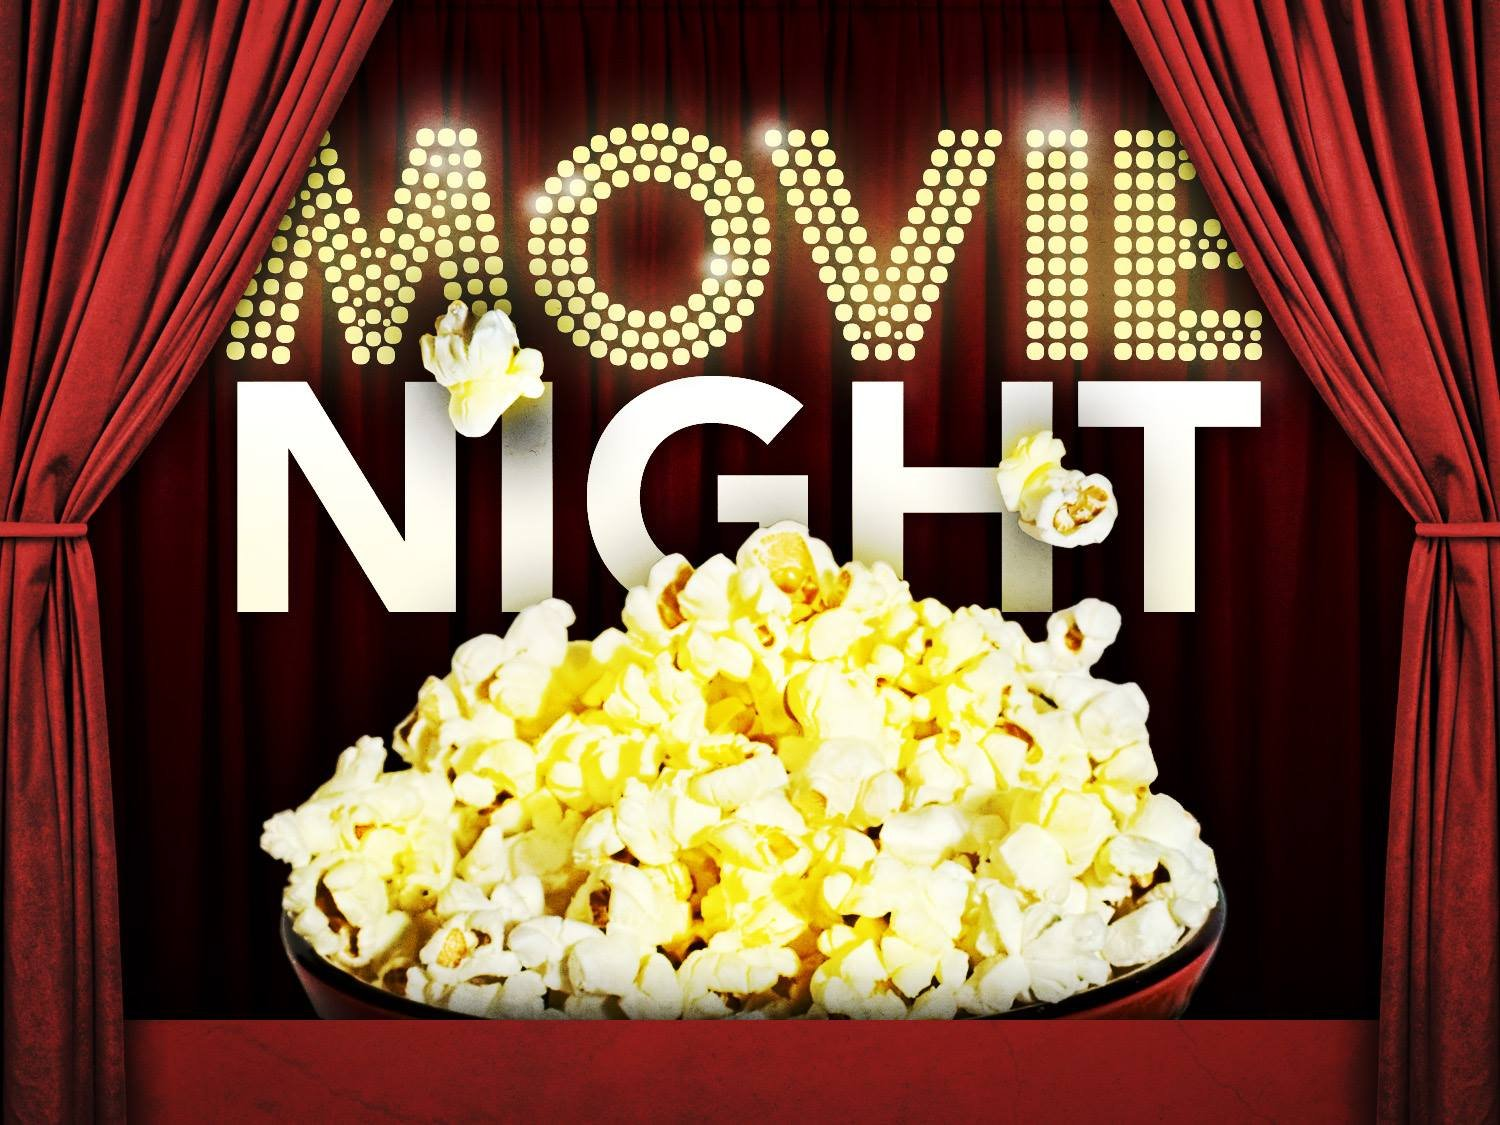 MOVIE AND POPCORN NIGHT Birthday Party Edible Frosting Image 1/2 sheet Cake Topper